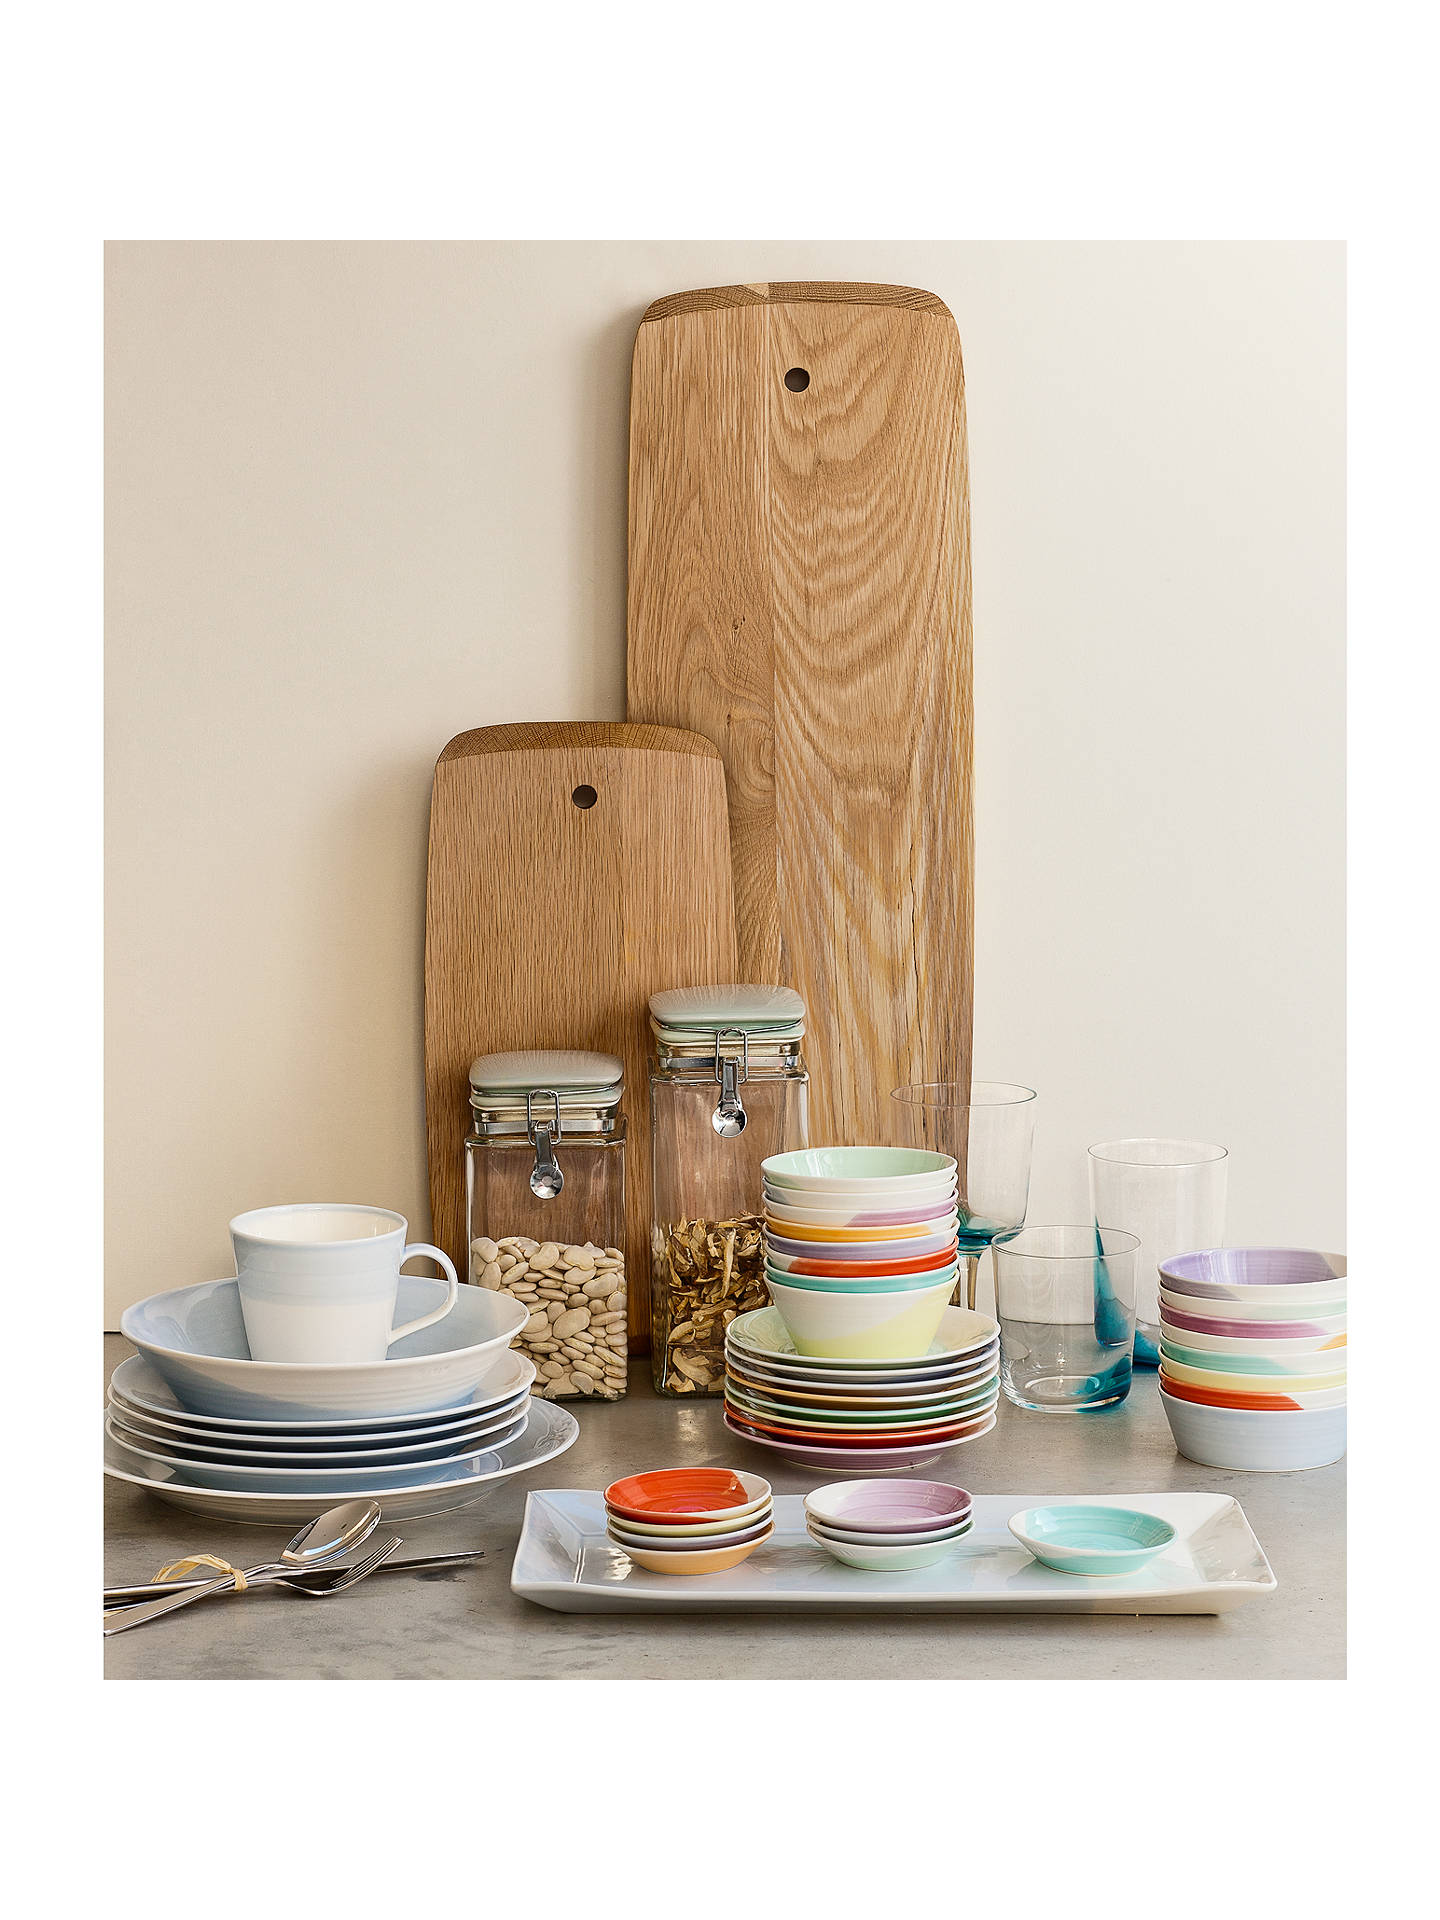 BuyRoyal Doulton 1815 Dinnerware Set, White/Blue, 16 Pieces Online at johnlewis.com